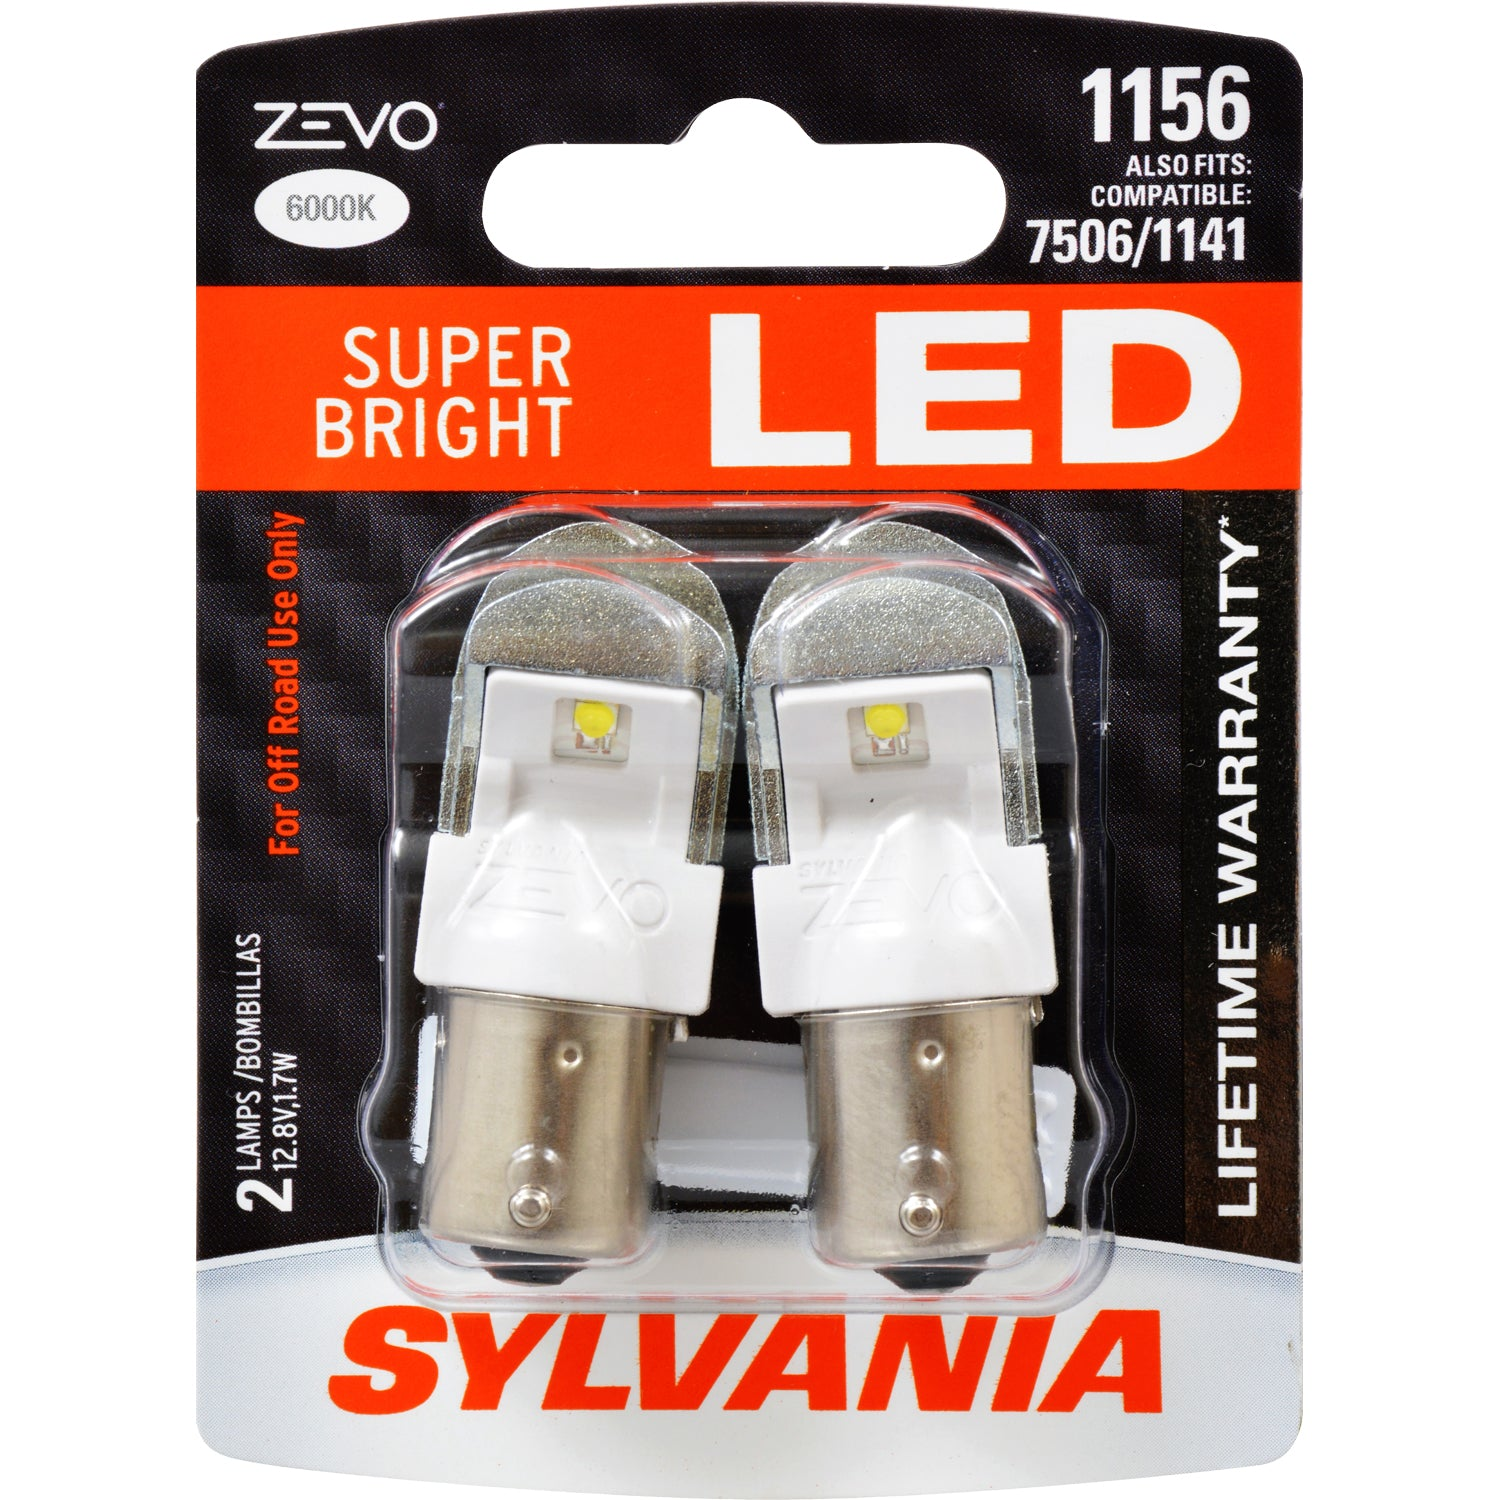 2-PK SYLVANIA 1156 ZEVO LED Super Bright 6000K Automotive Bulb - fits 7506, 1141